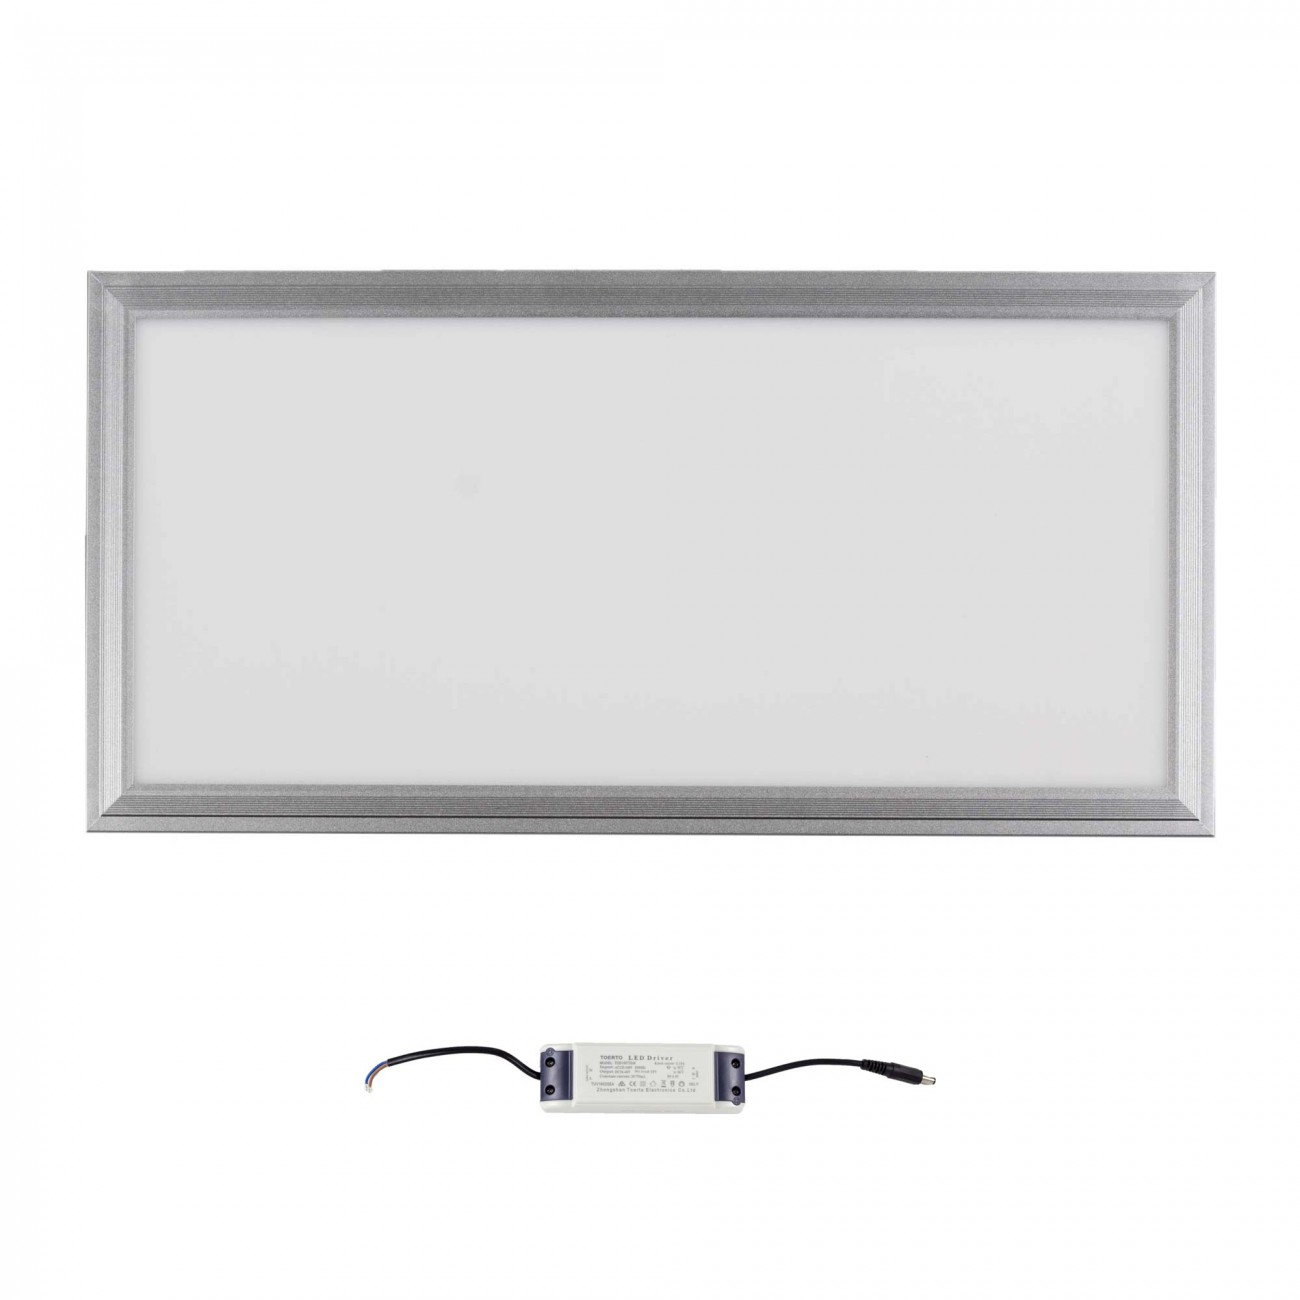 maxcraft led panel light slim 24w 300 x 600 x 15 mm cool. Black Bedroom Furniture Sets. Home Design Ideas